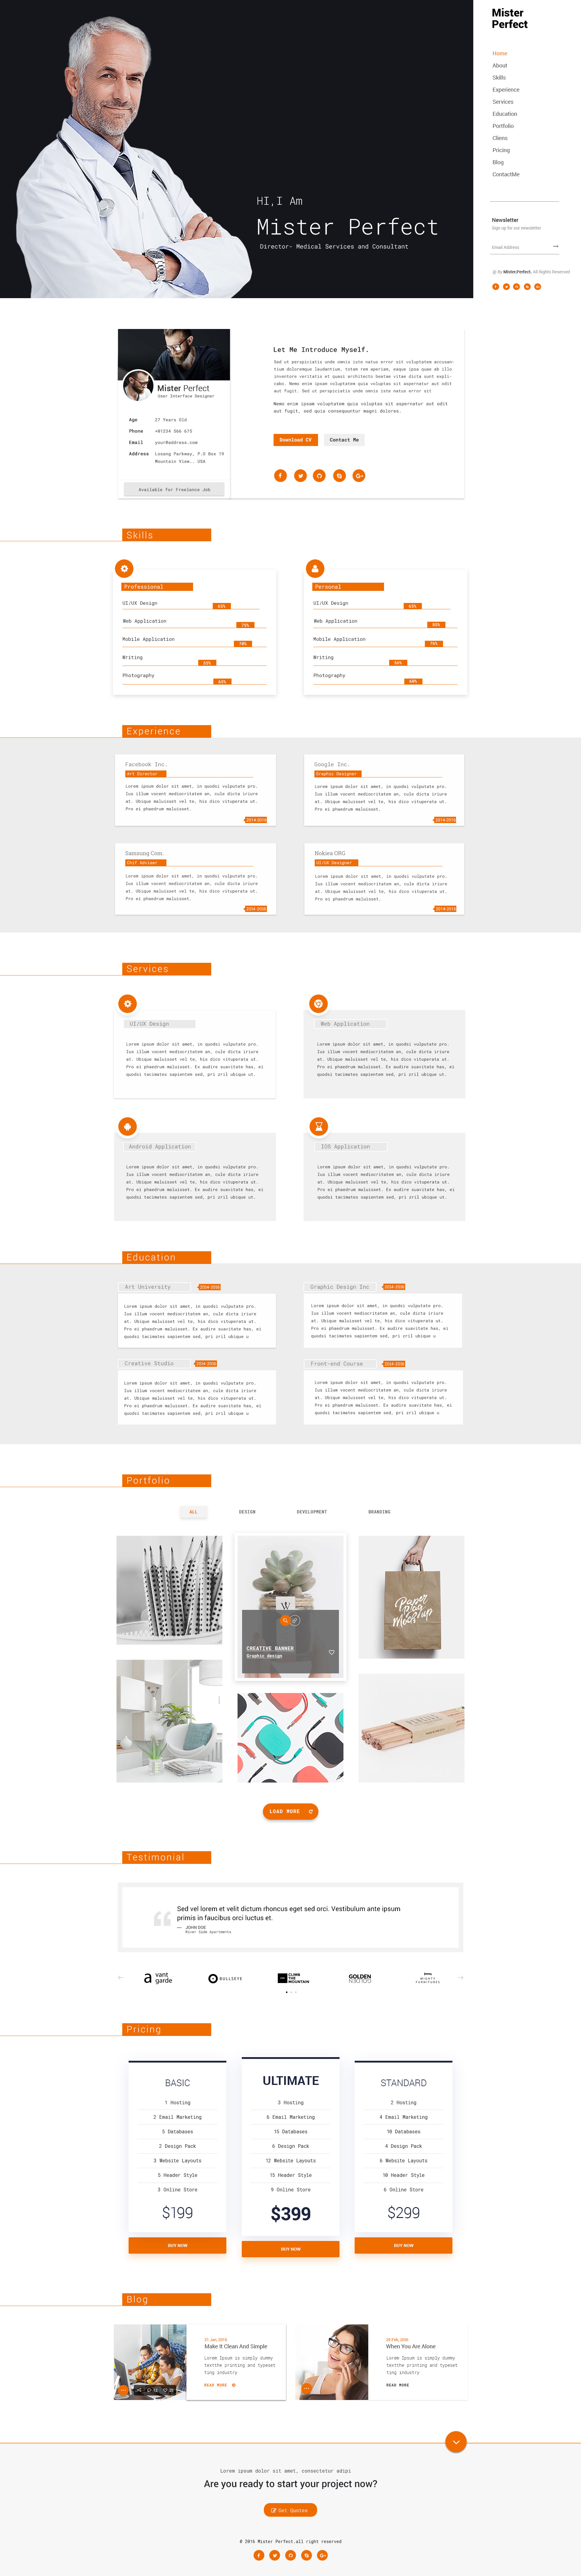 mister perfect  resume psd template by